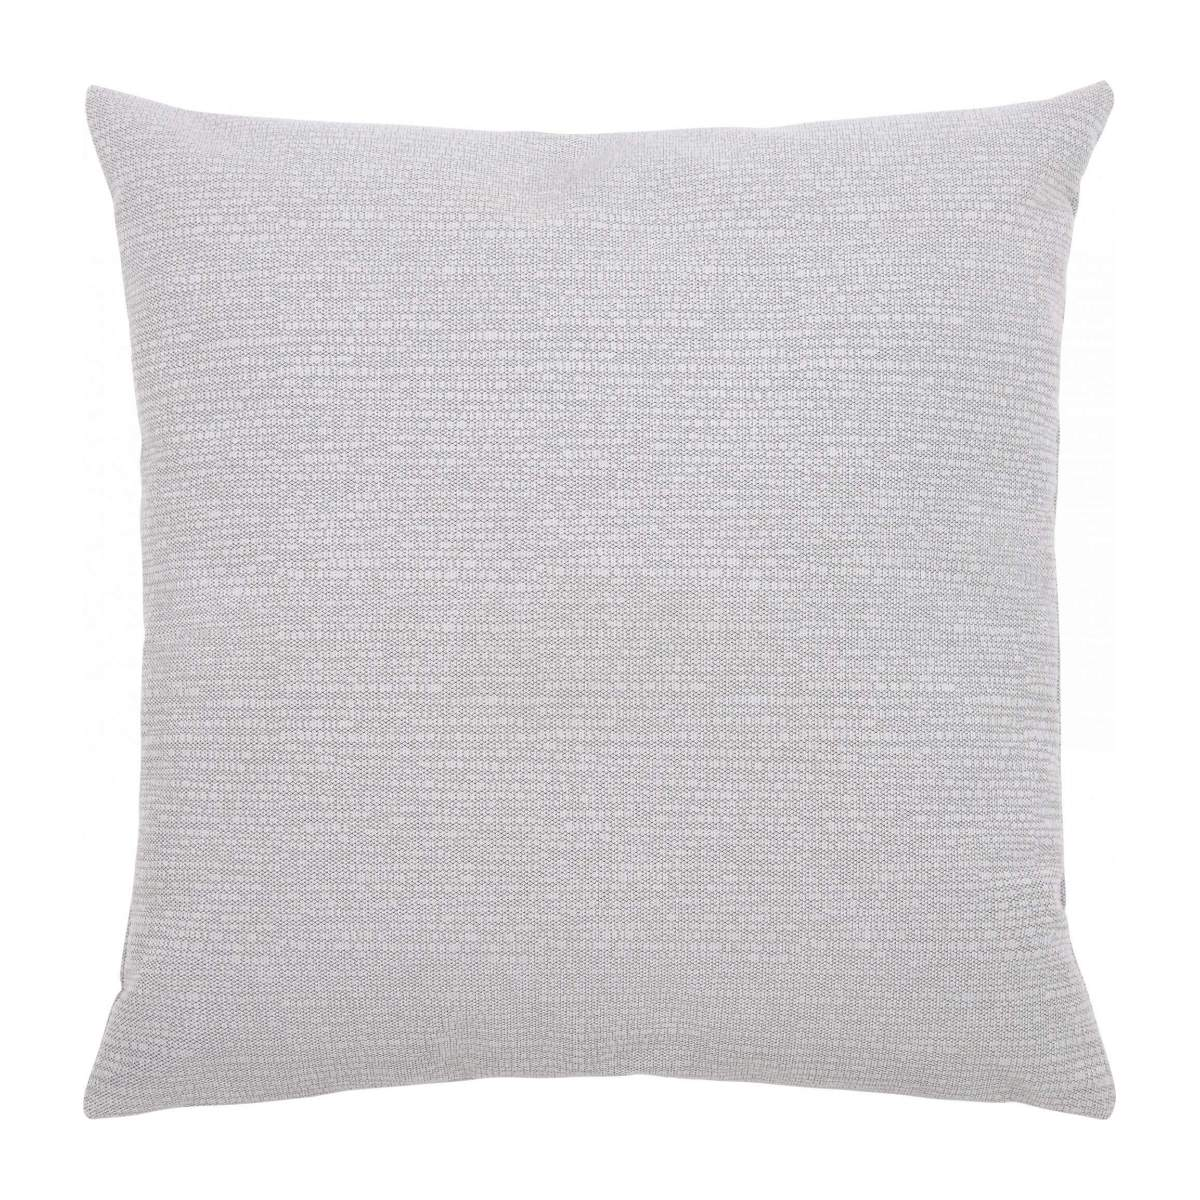 Cushion made of textured velvet 45x45cm, grey n°1